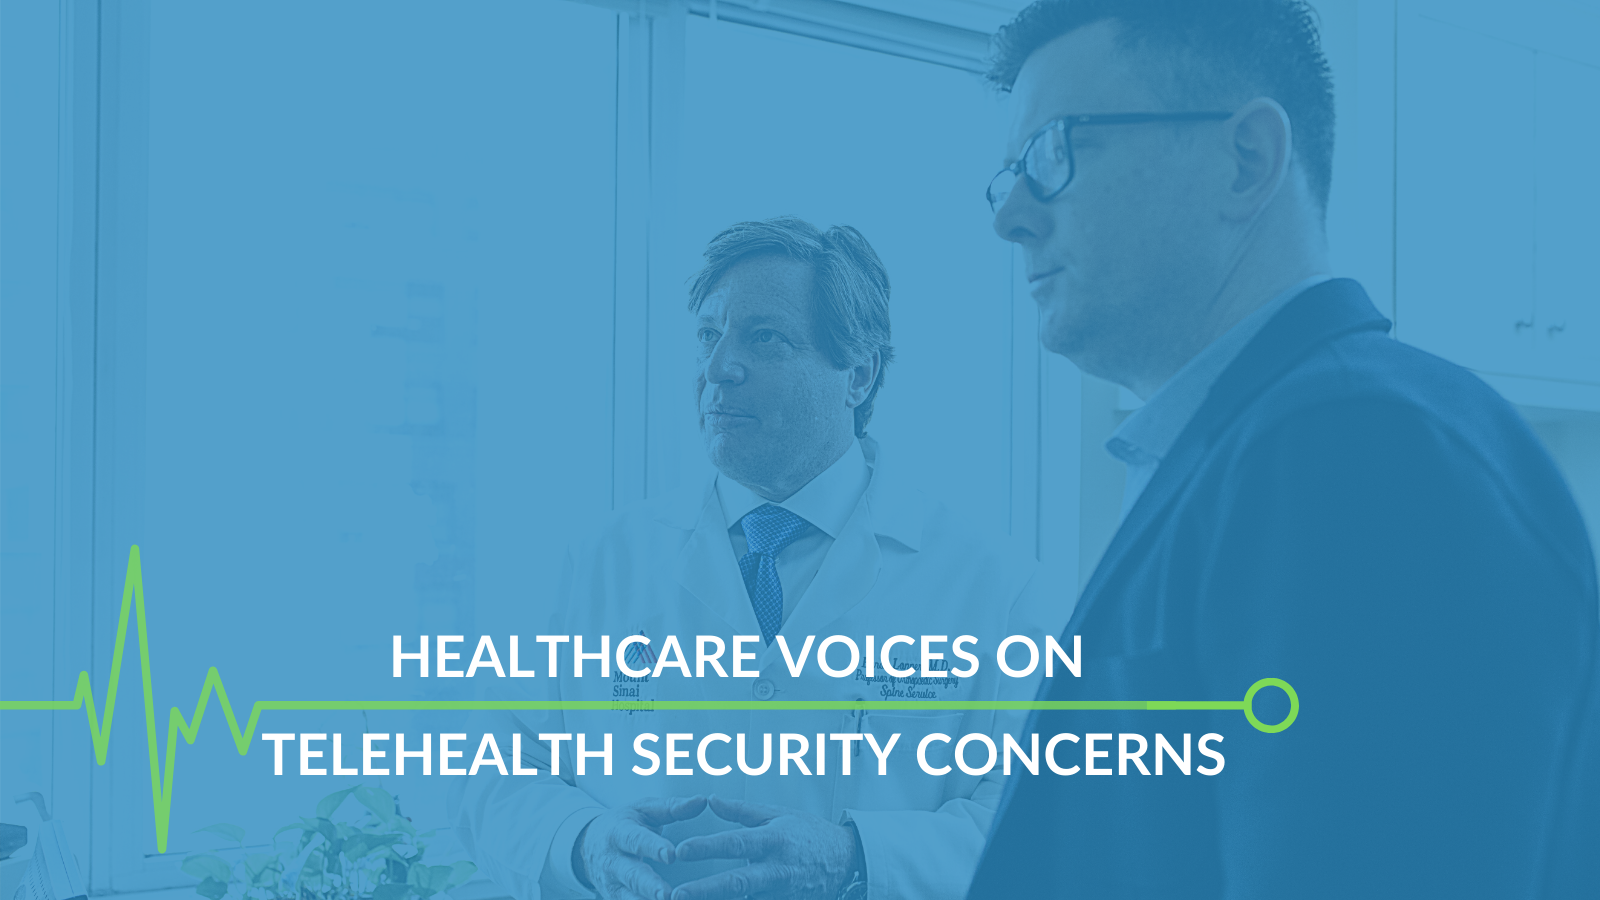 Healthcare Voices on Telehealth Security Concerns